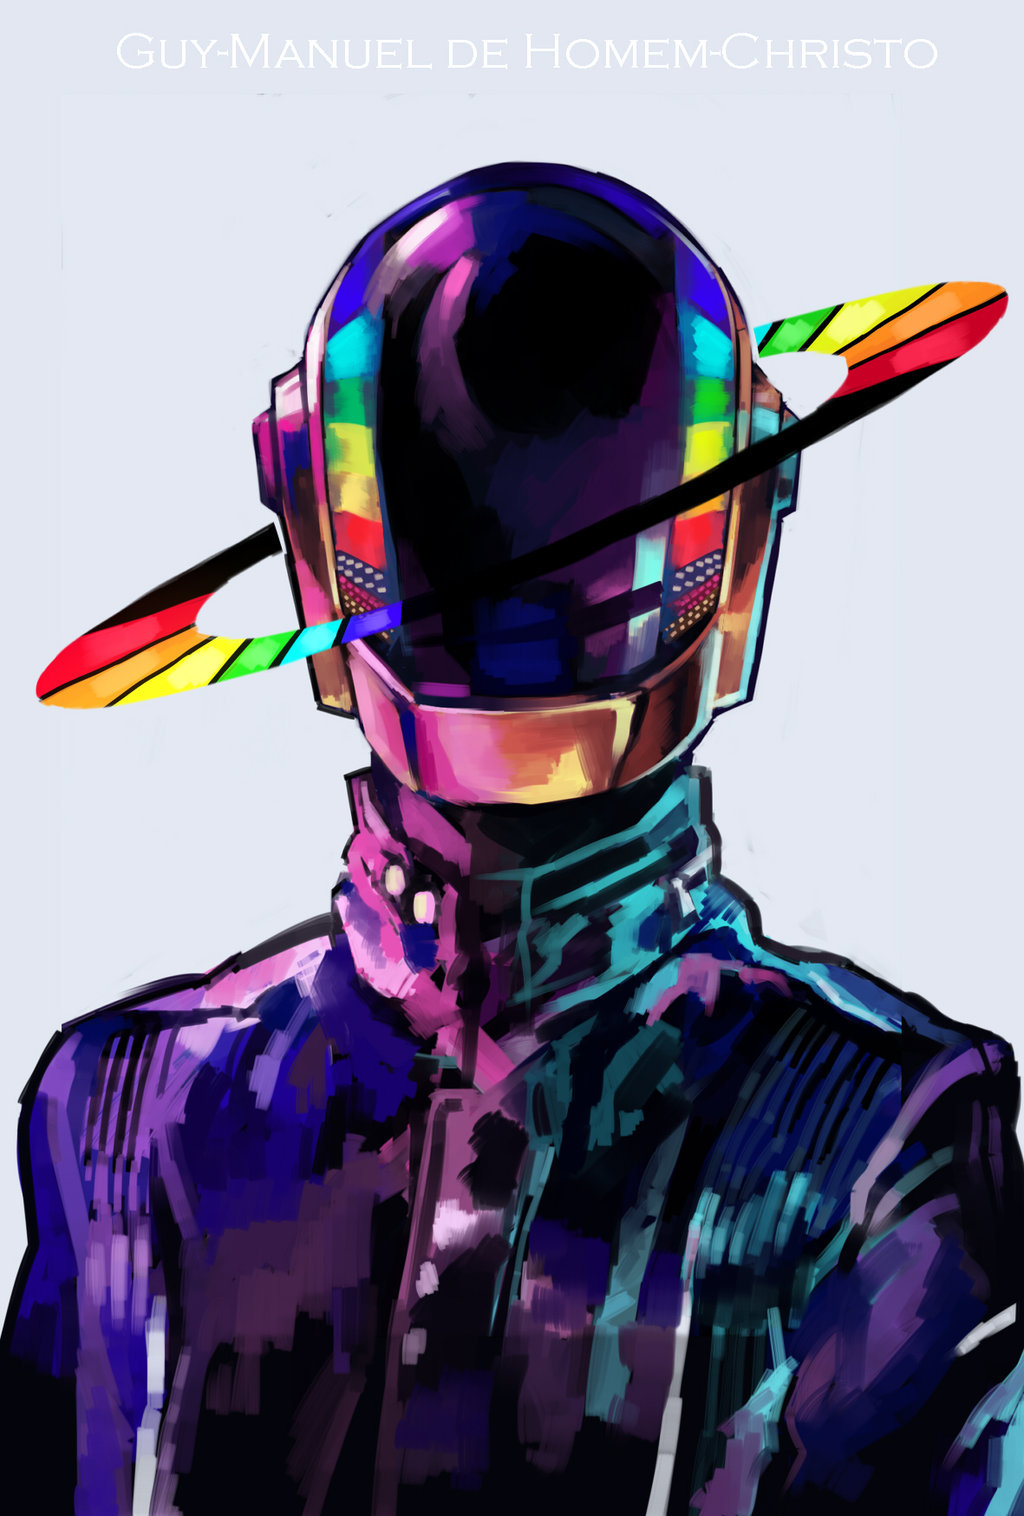 http://browse.deviantart.com/art/Daft-Punk-360357061